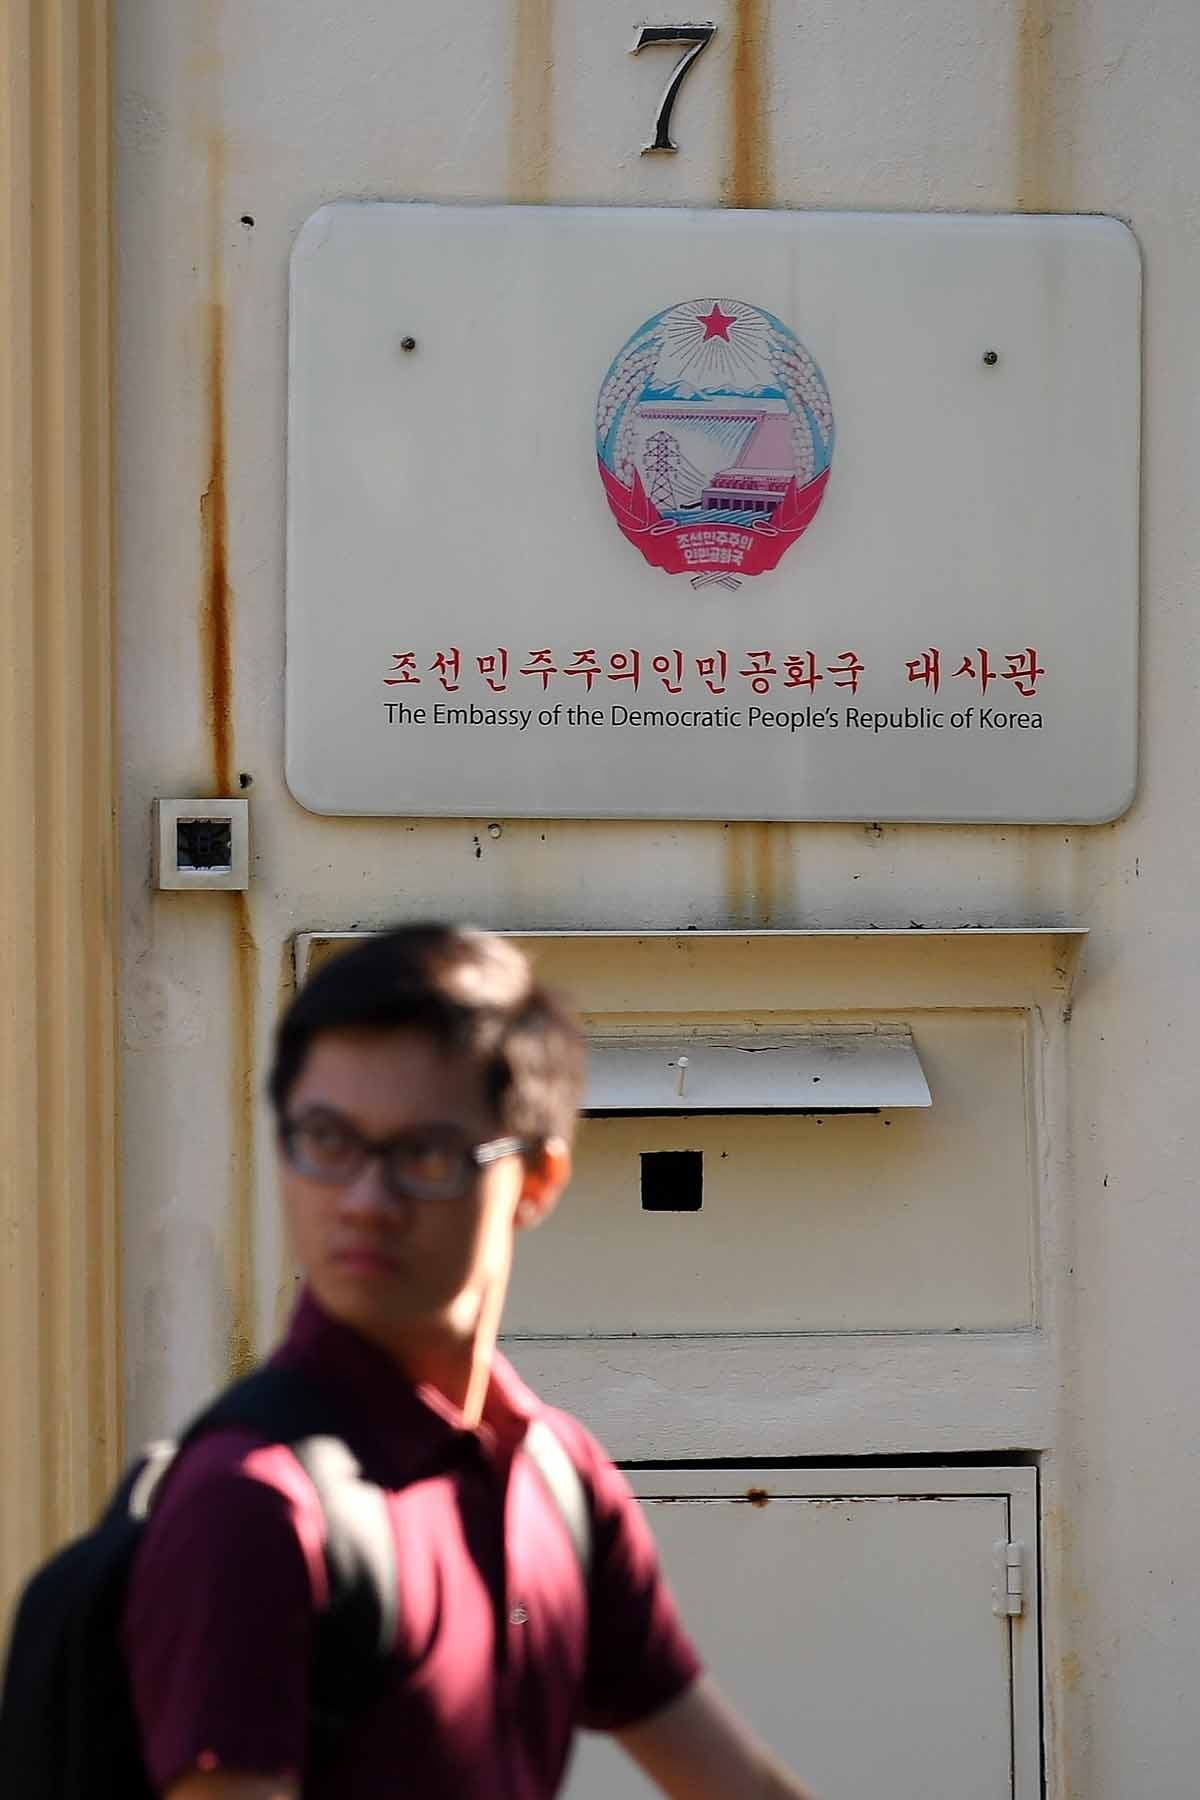 A man walks past the North Korean embassy in Kuala Lumpur on February 15, 2017, a day after it was reported that a North Korean man suspected to be Kim Jong-Nam, half-brother of North Korean leader Kim Jong-Un, had been assasinated.